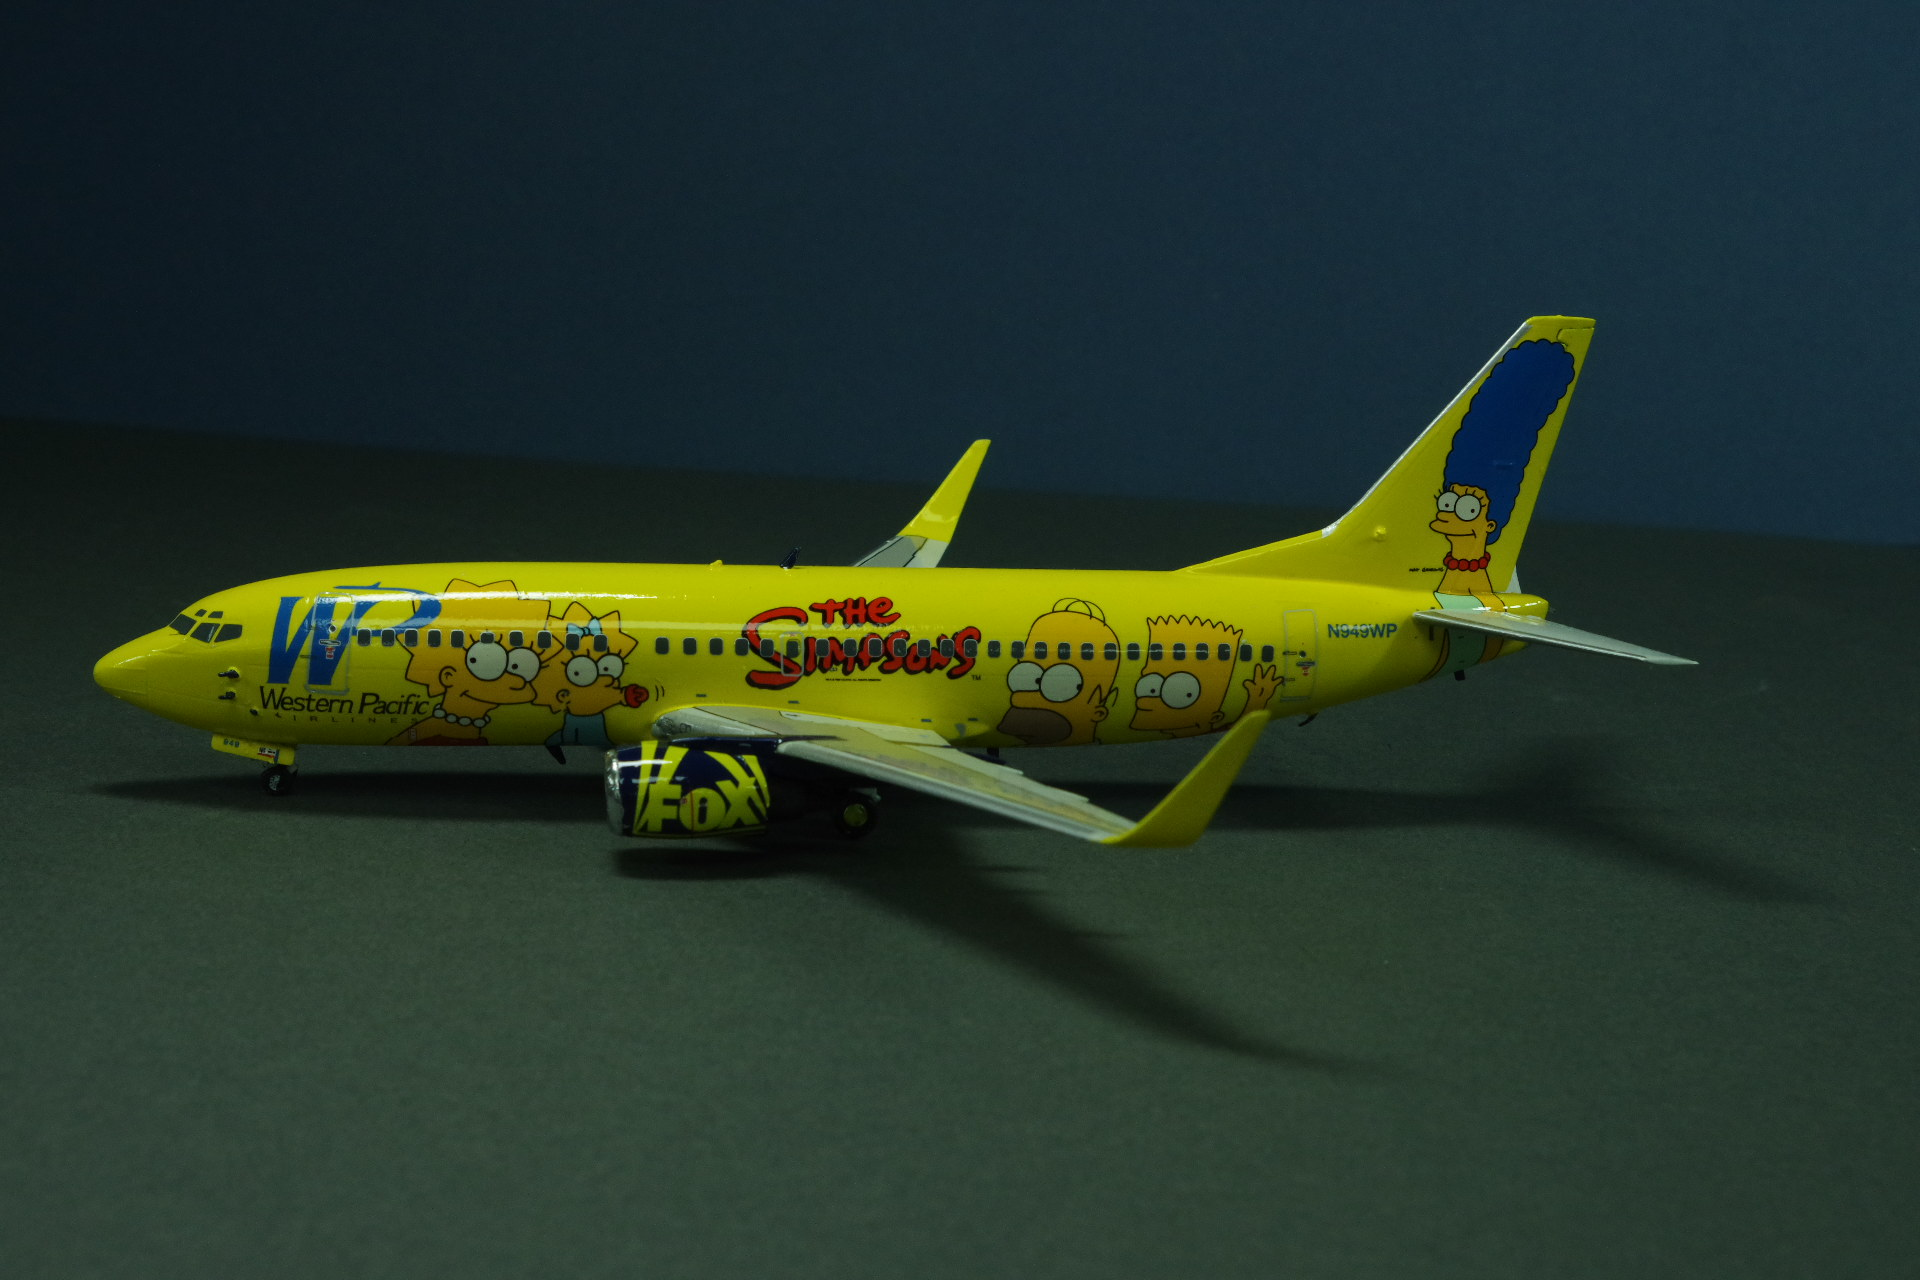 Boeing 737-300 SP Western Pacific